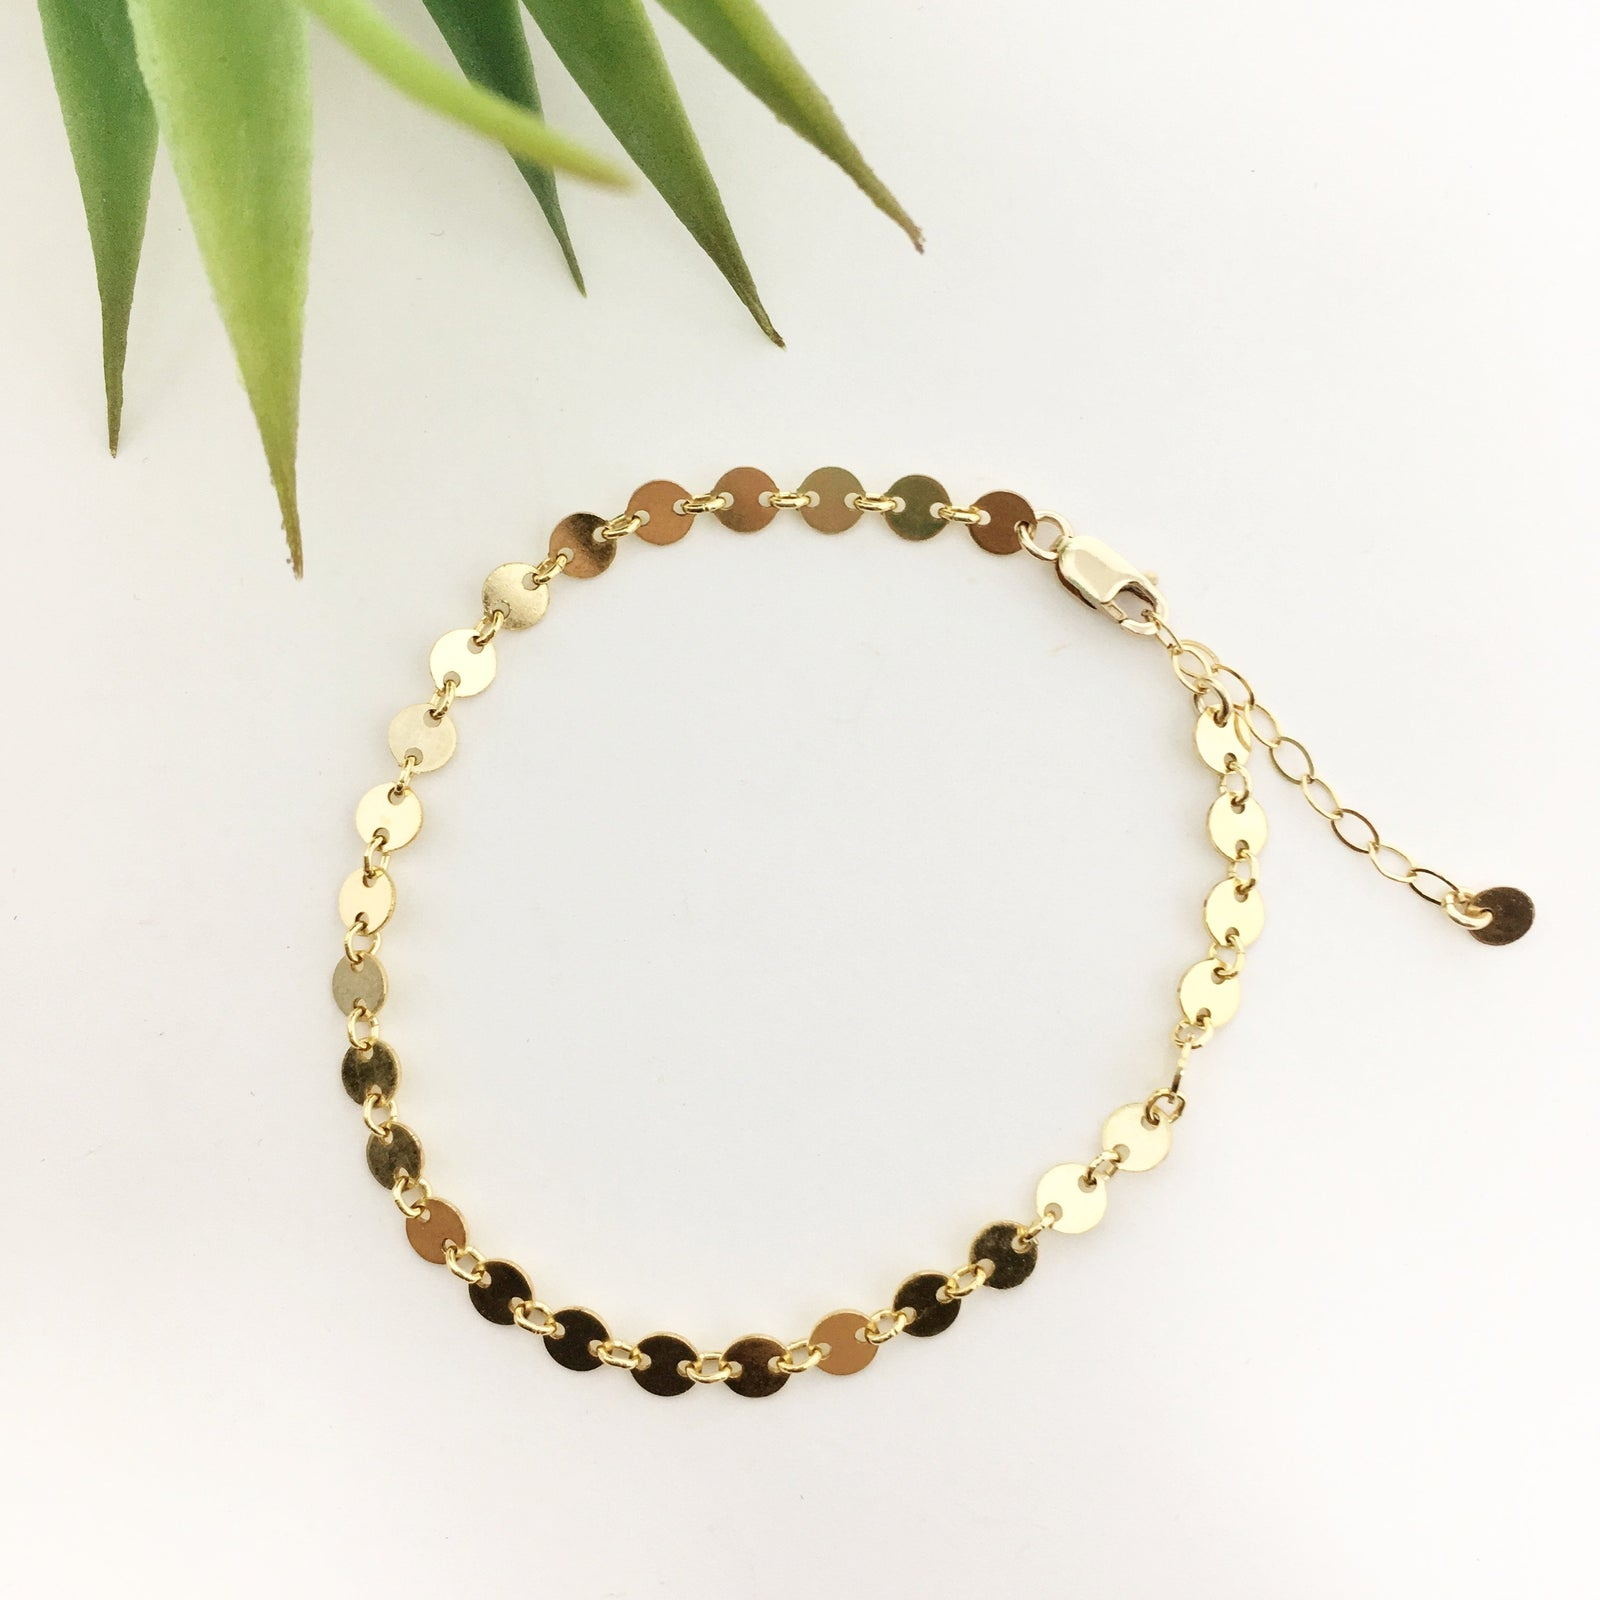 14K GOLD-FILLED DISK CHAIN ANKLET